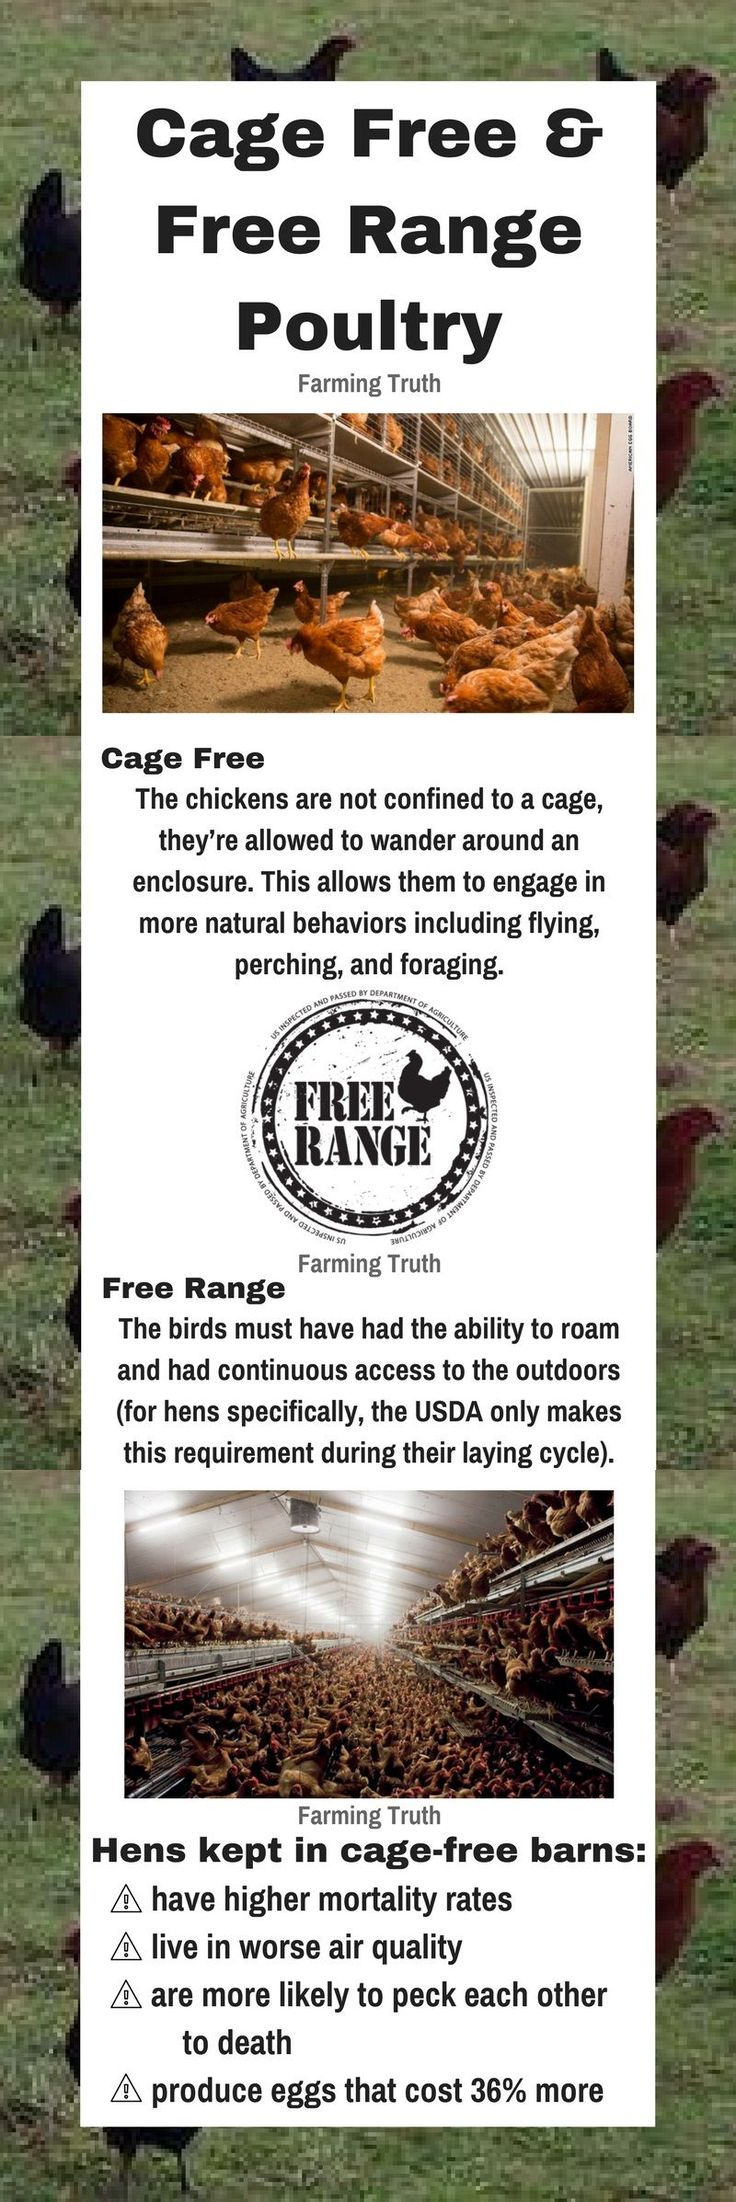 Are cage free and free range poultry, including laying hens and broiler meat chickens, raised more humanely? Focusing on farm animal welfare.